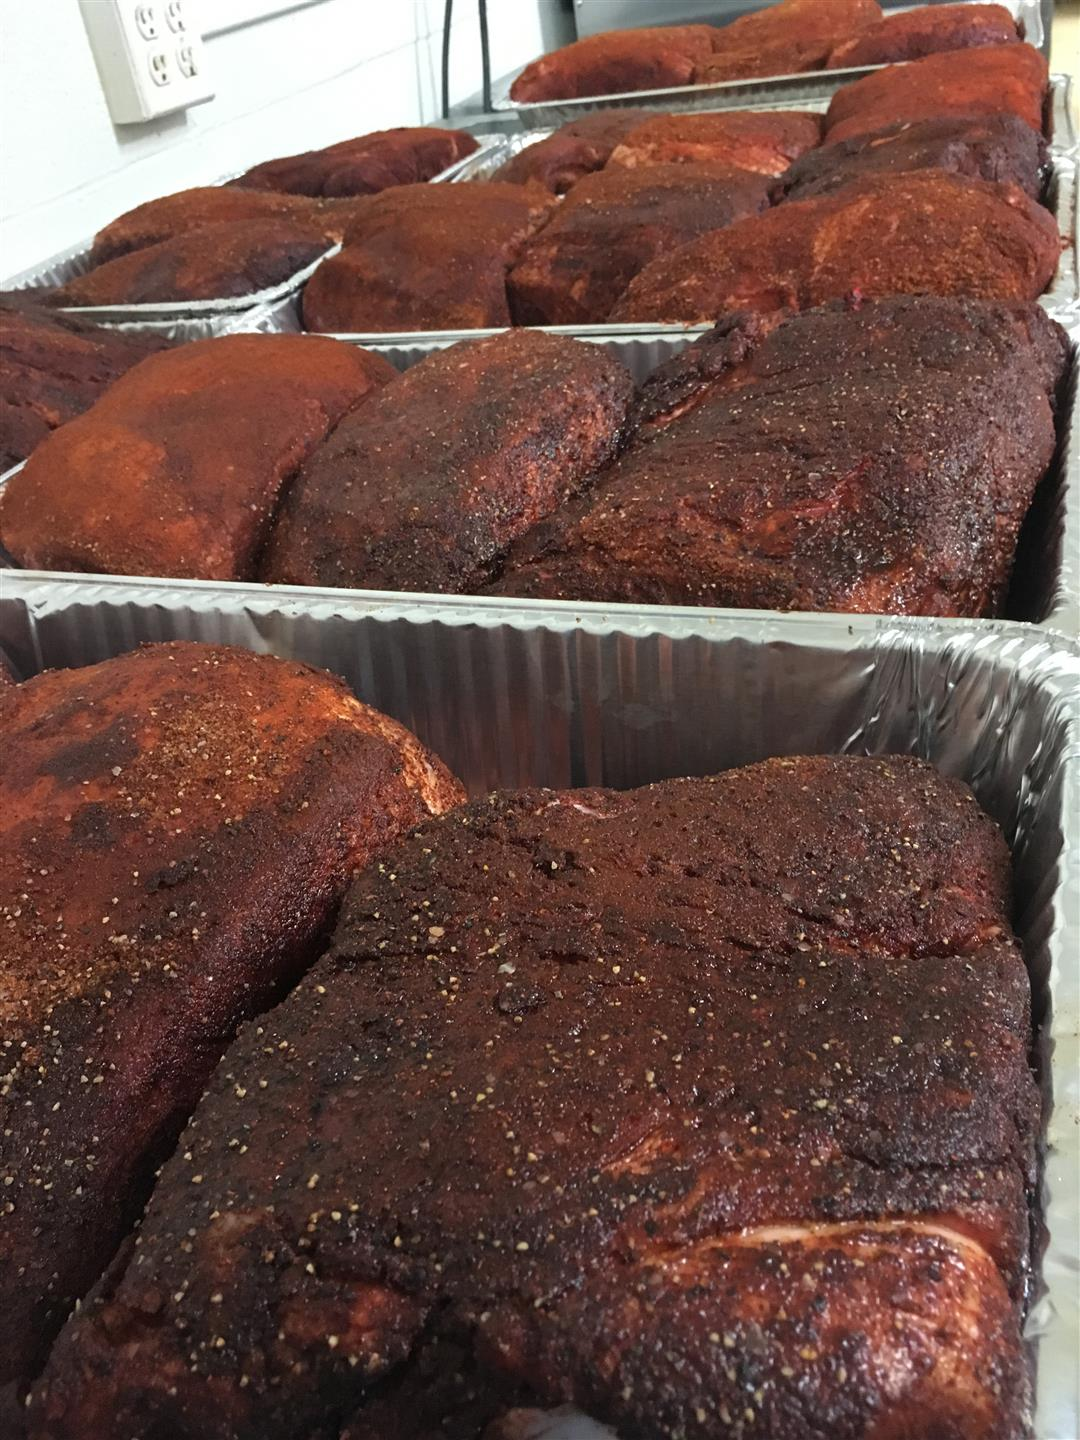 multiple trays of seasoned smoked pork butts